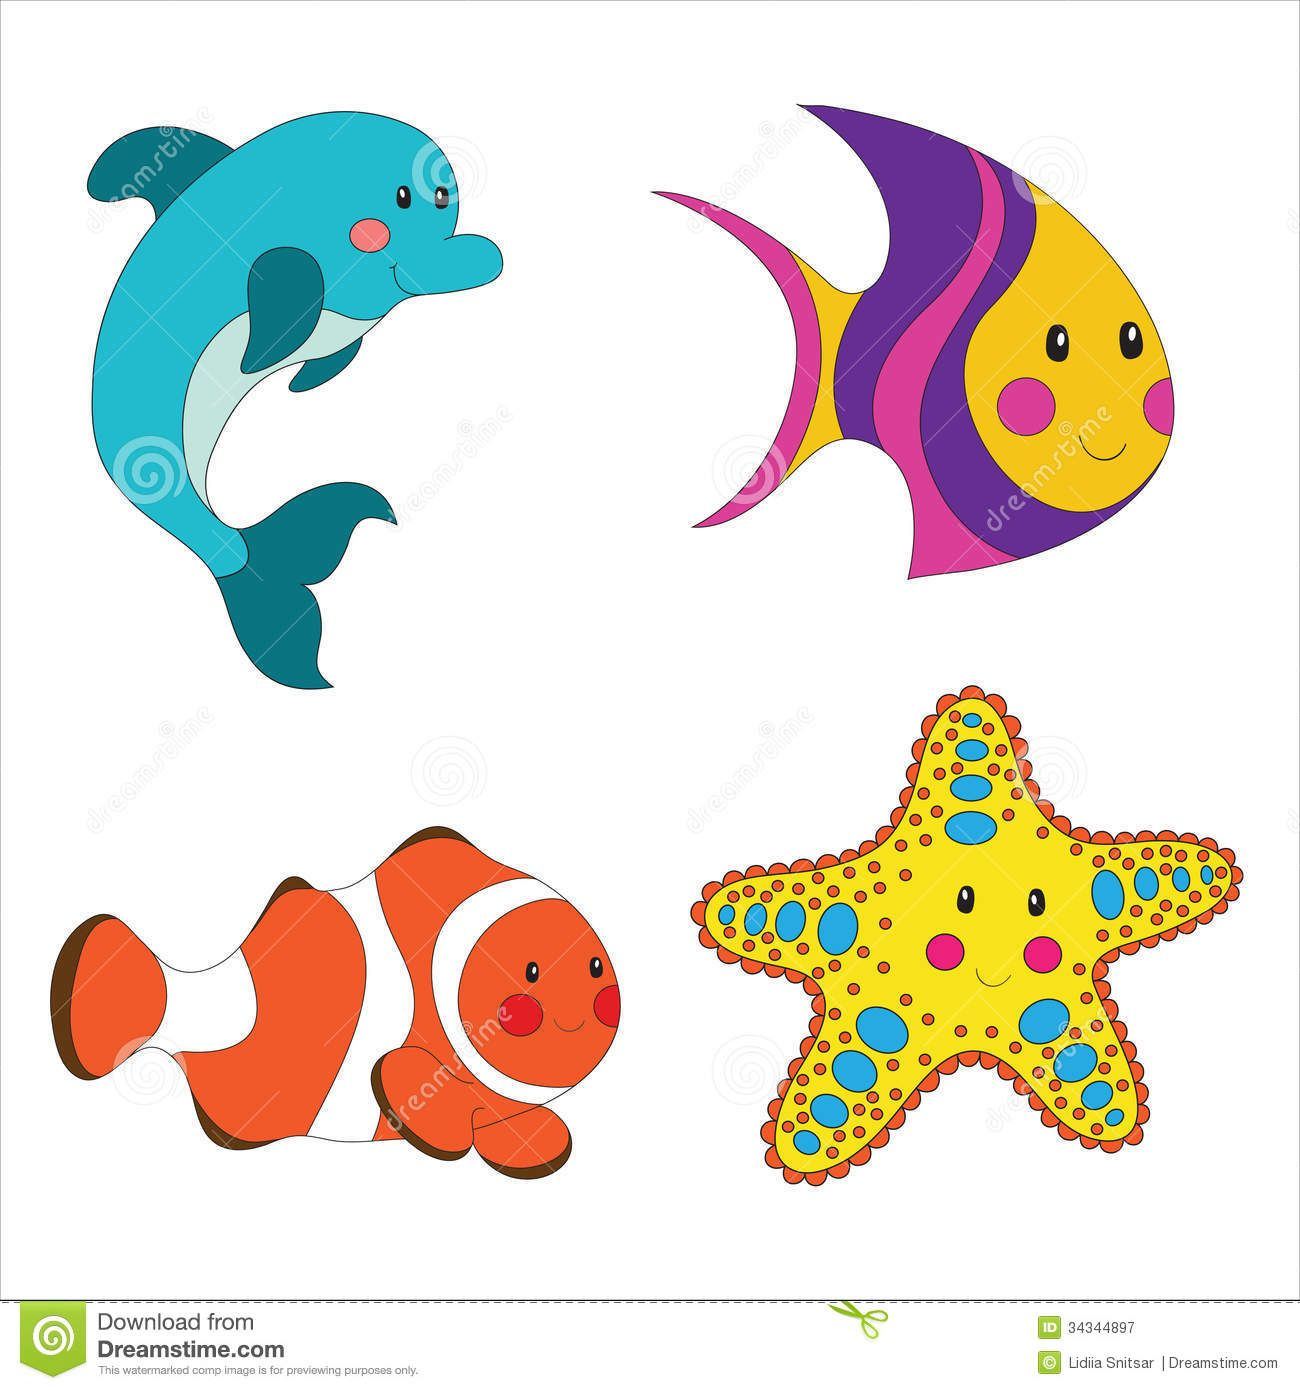 images sea creatures Google Search Animales marinos